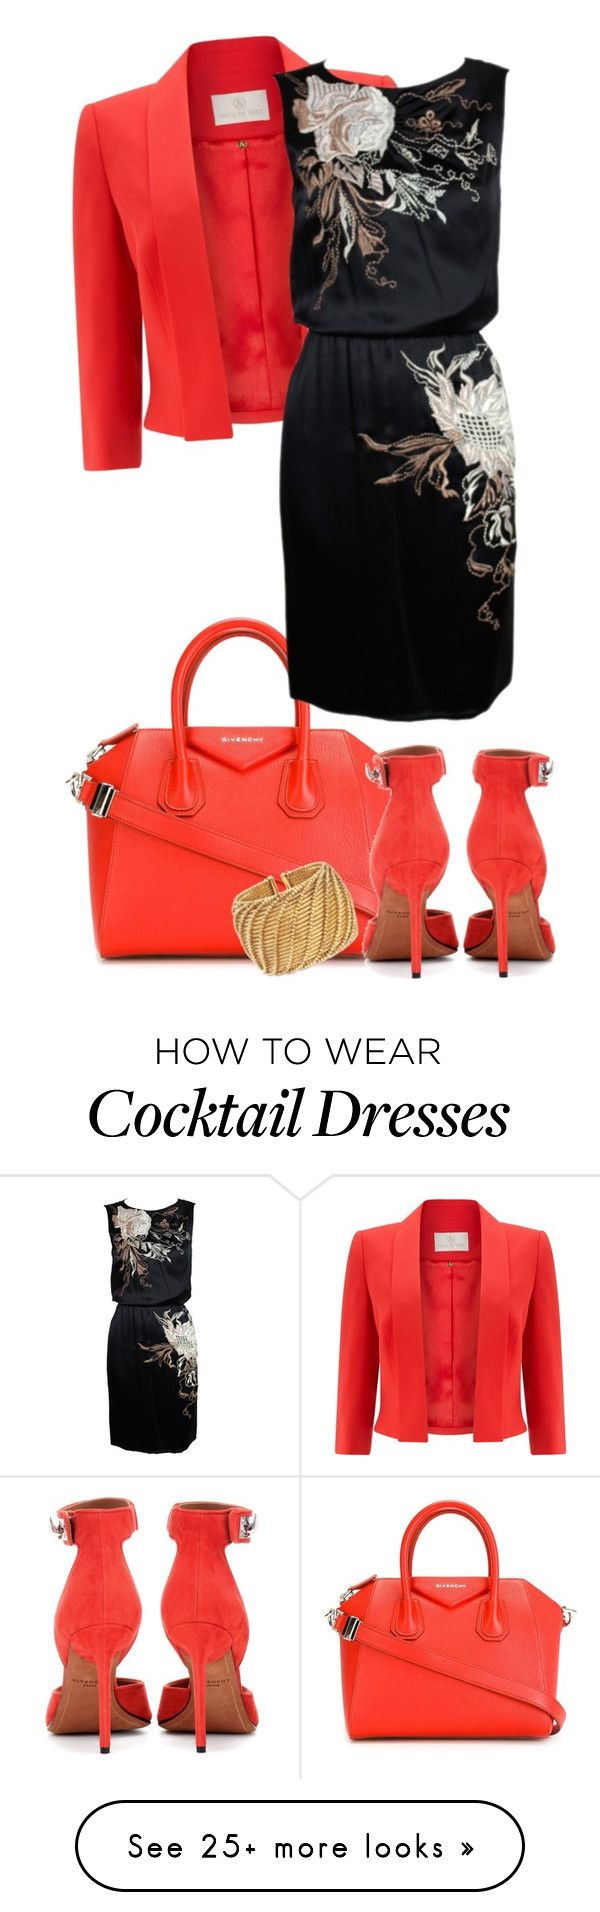 """- 58 - Givenchy - Bag & Shoes"" by atenaide86 on Polyvore featuring Givenchy, Jacques Vert, Ross-Simons and Valentino"